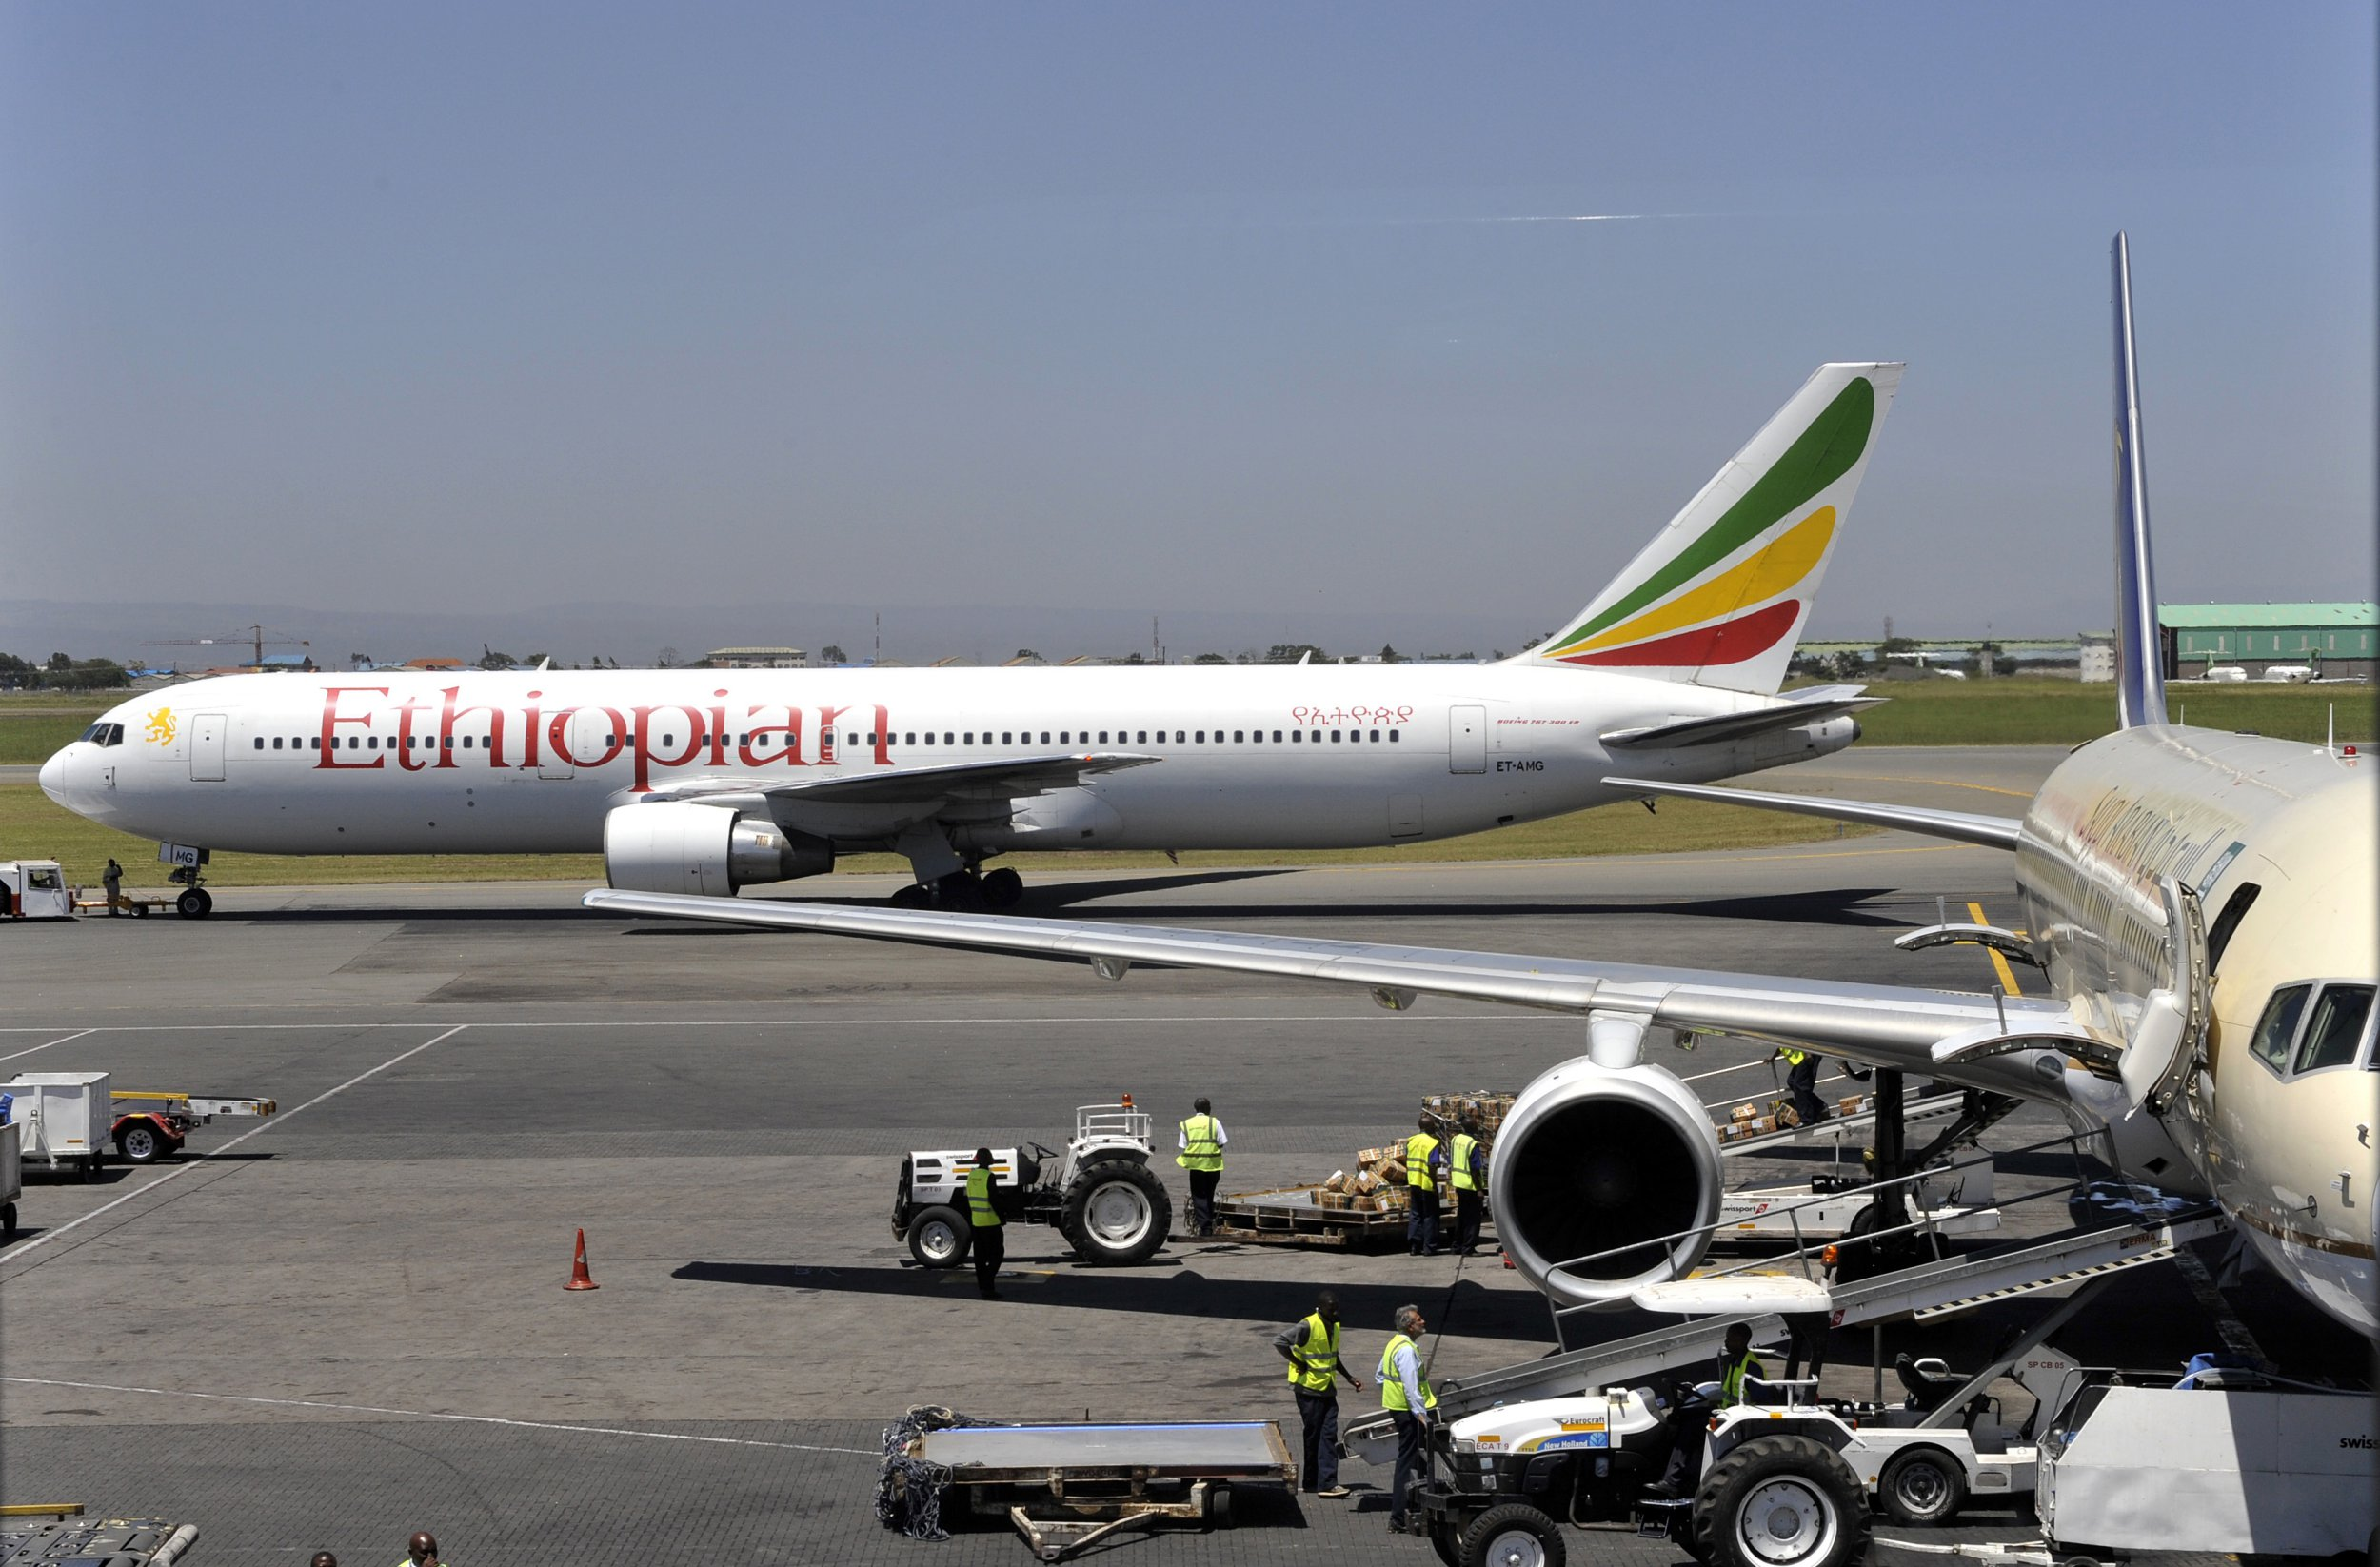 An Ethiopian Boeing 737 flight leaves the hanger in Nairobi on January 26, 2010. The crash of an Ethiopian Airlines jet, in which 90 people are feared dead on January 25, 2010, comes as a blow to a company considered the jewel of Ethiopia's industry and tipped for exponential growth. AFP PHOTO/SIMON MAINA (Photo credit should read SIMON MAINA/AFP/Getty Images)